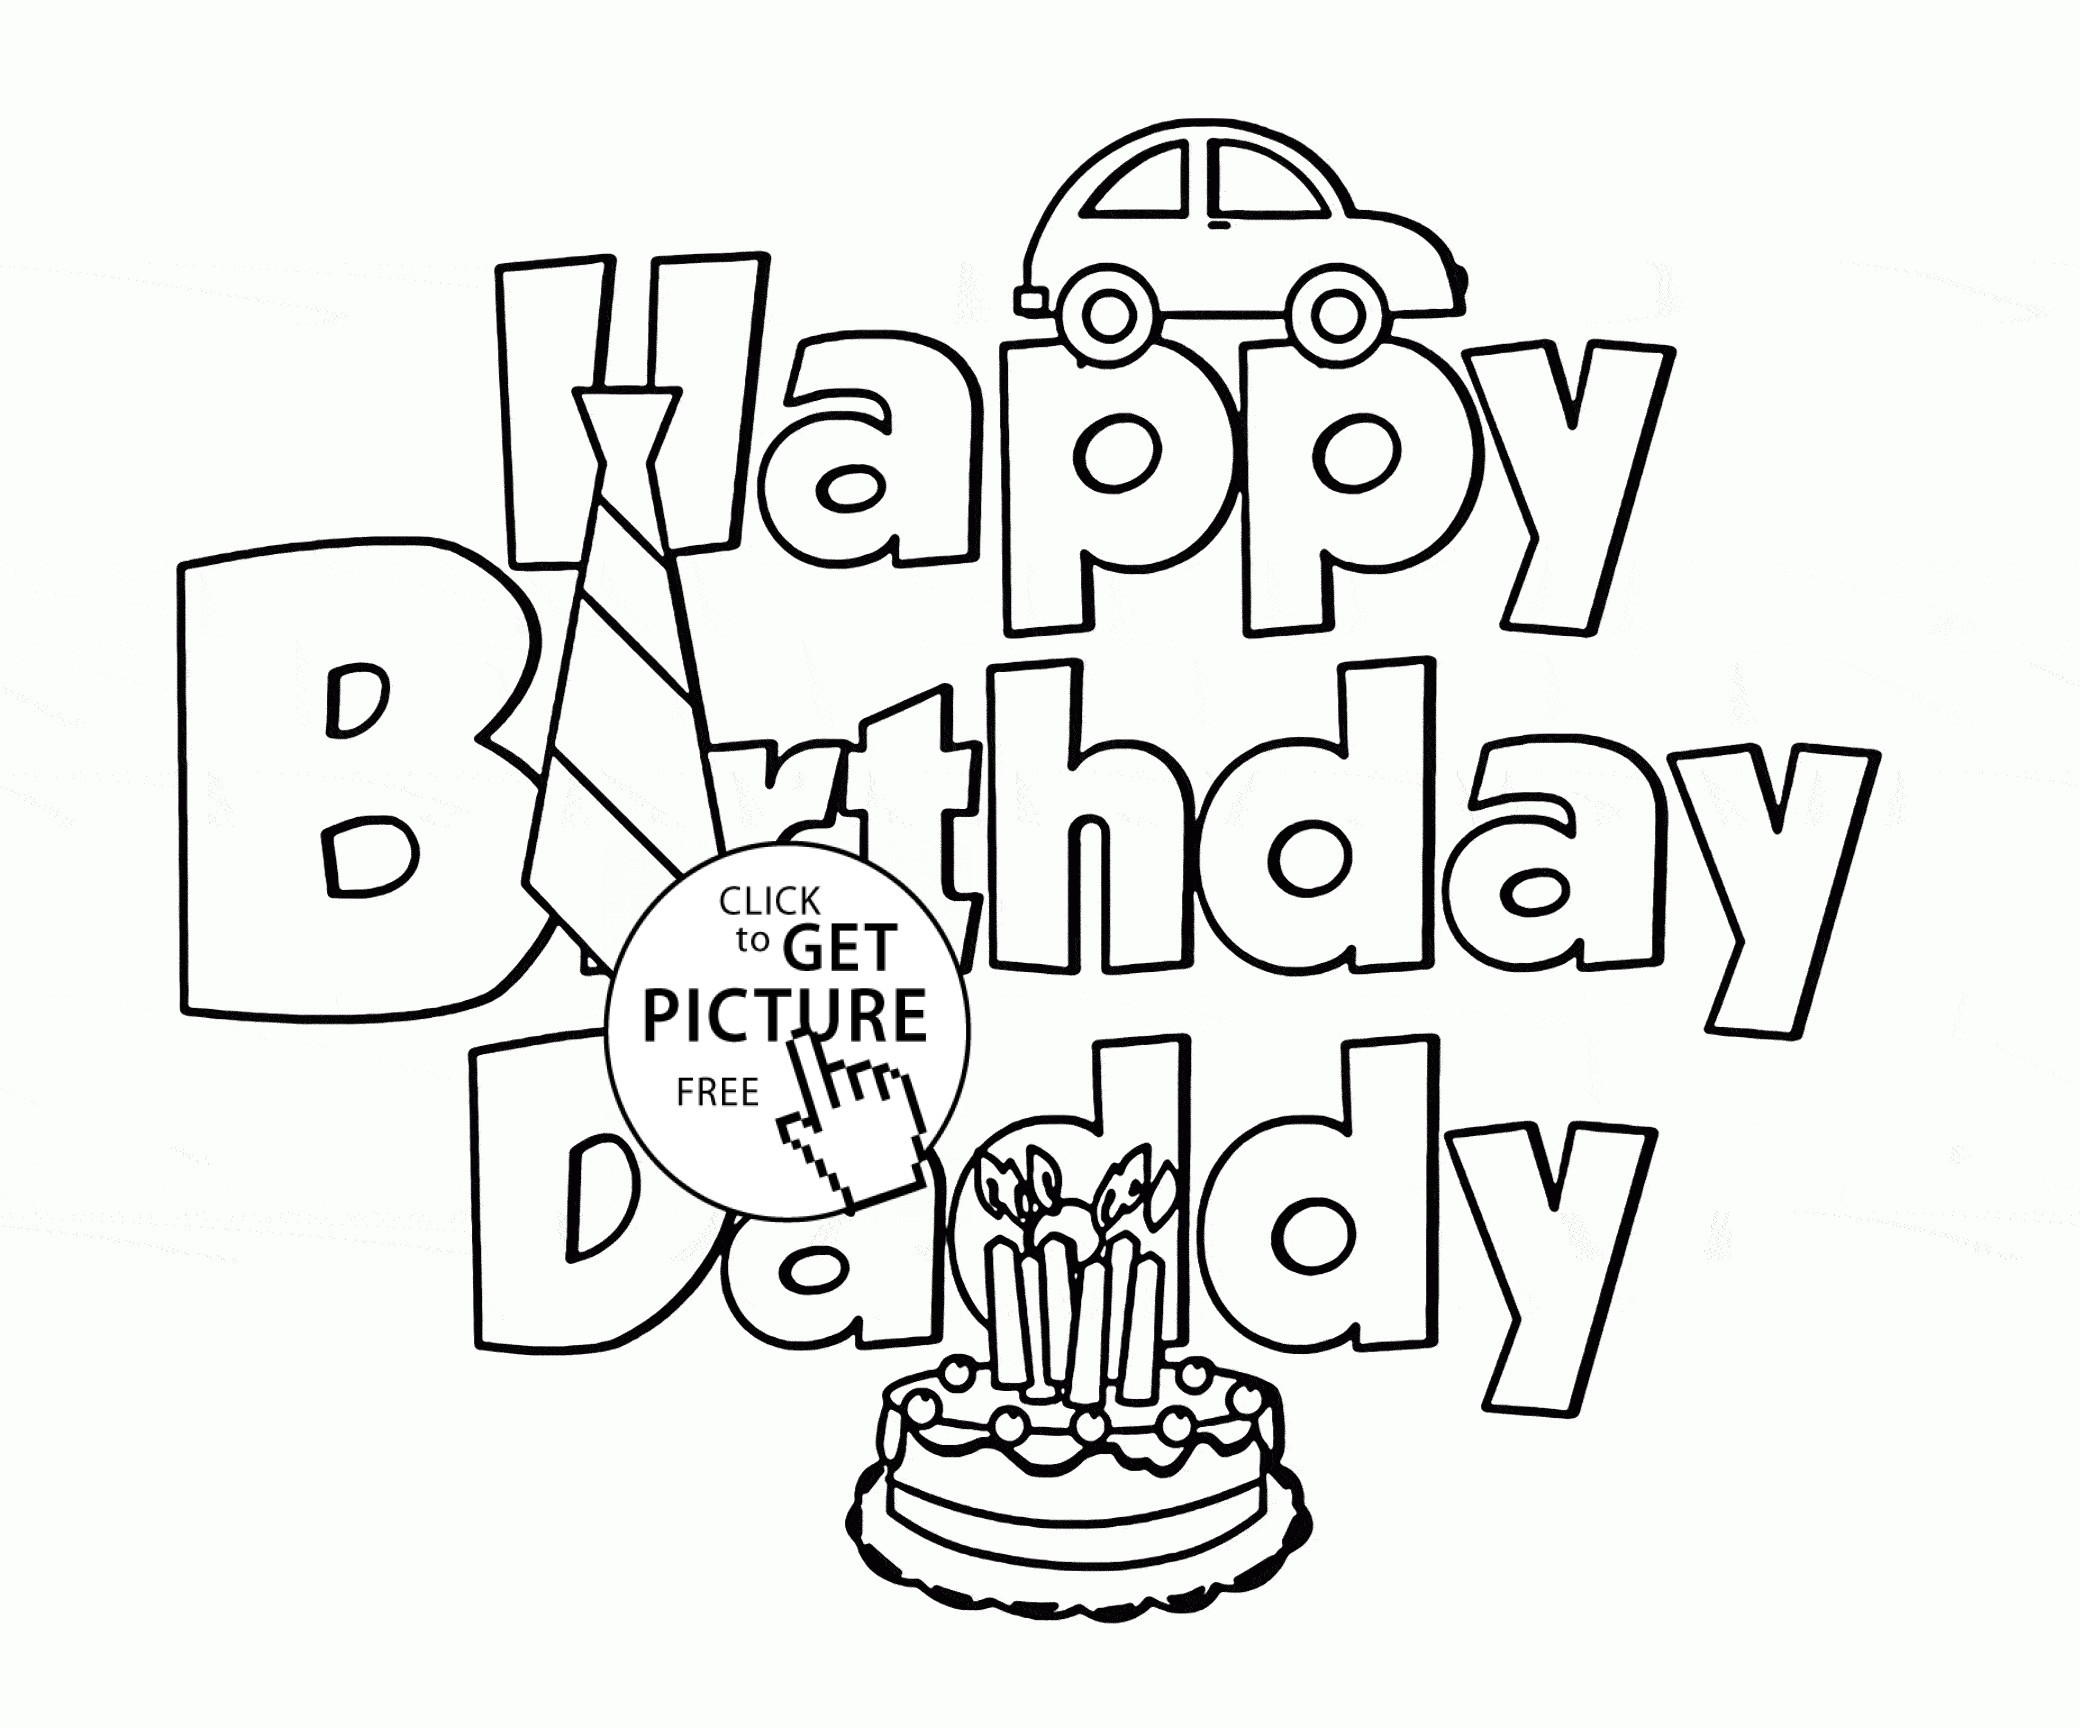 happy birthday dad coloring pictures ; happy-birthday-dad-coloring-pages-awesome-super-dad-birthday-printable-free-lovely-simple-decoration-happy-of-happy-birthday-dad-coloring-pages